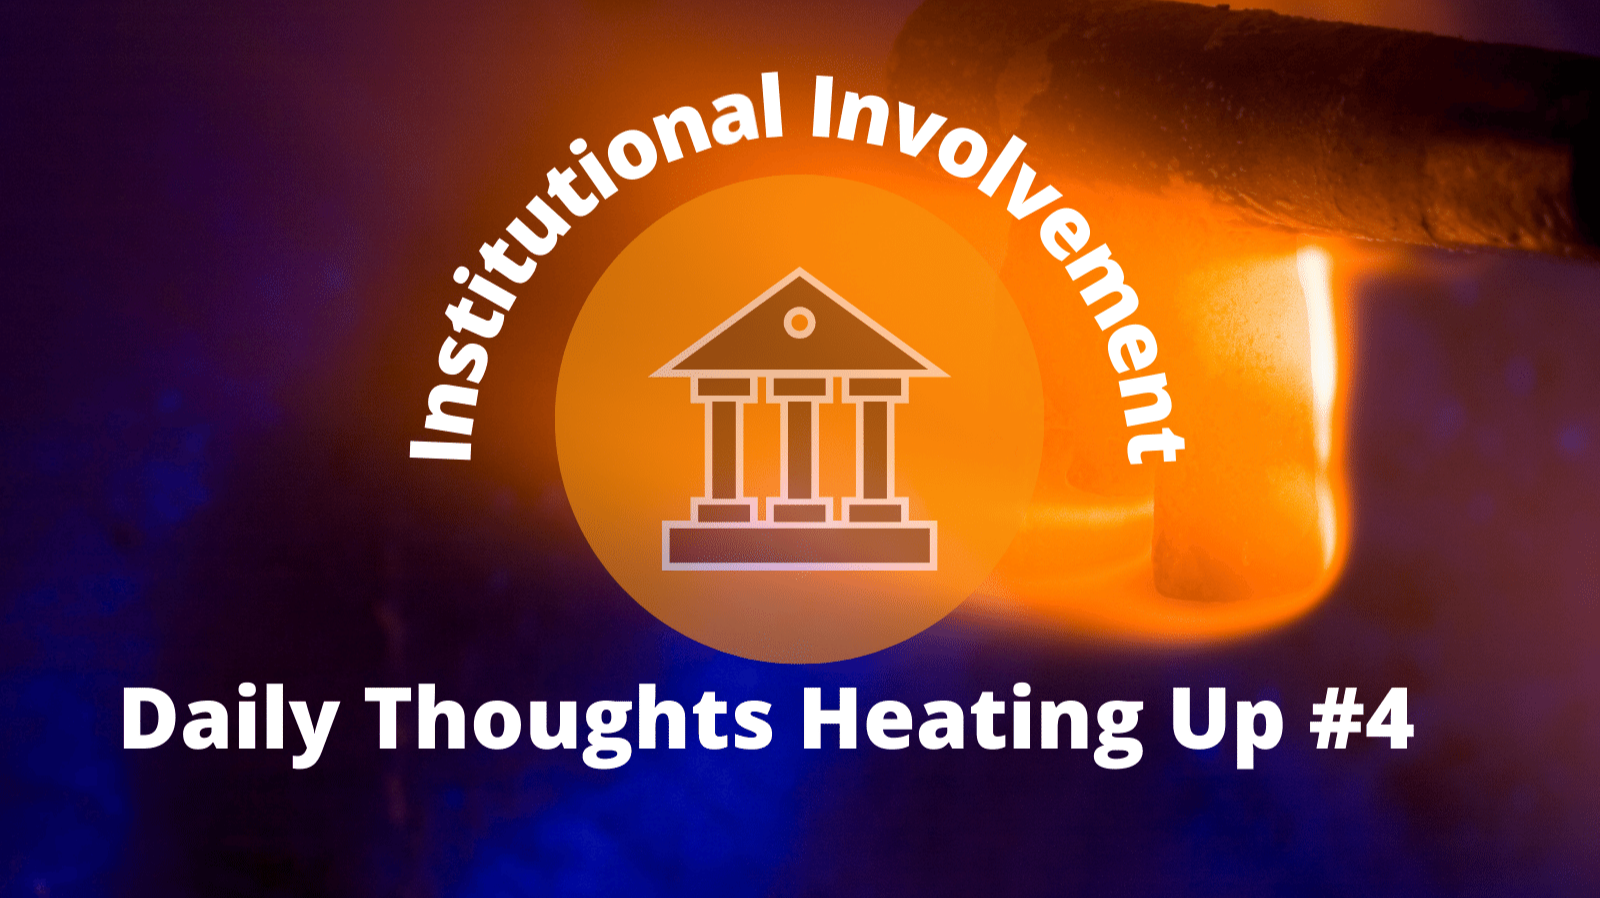 Daily Thoughts Heating Up #4 - Institutional Investments & What It Really Means